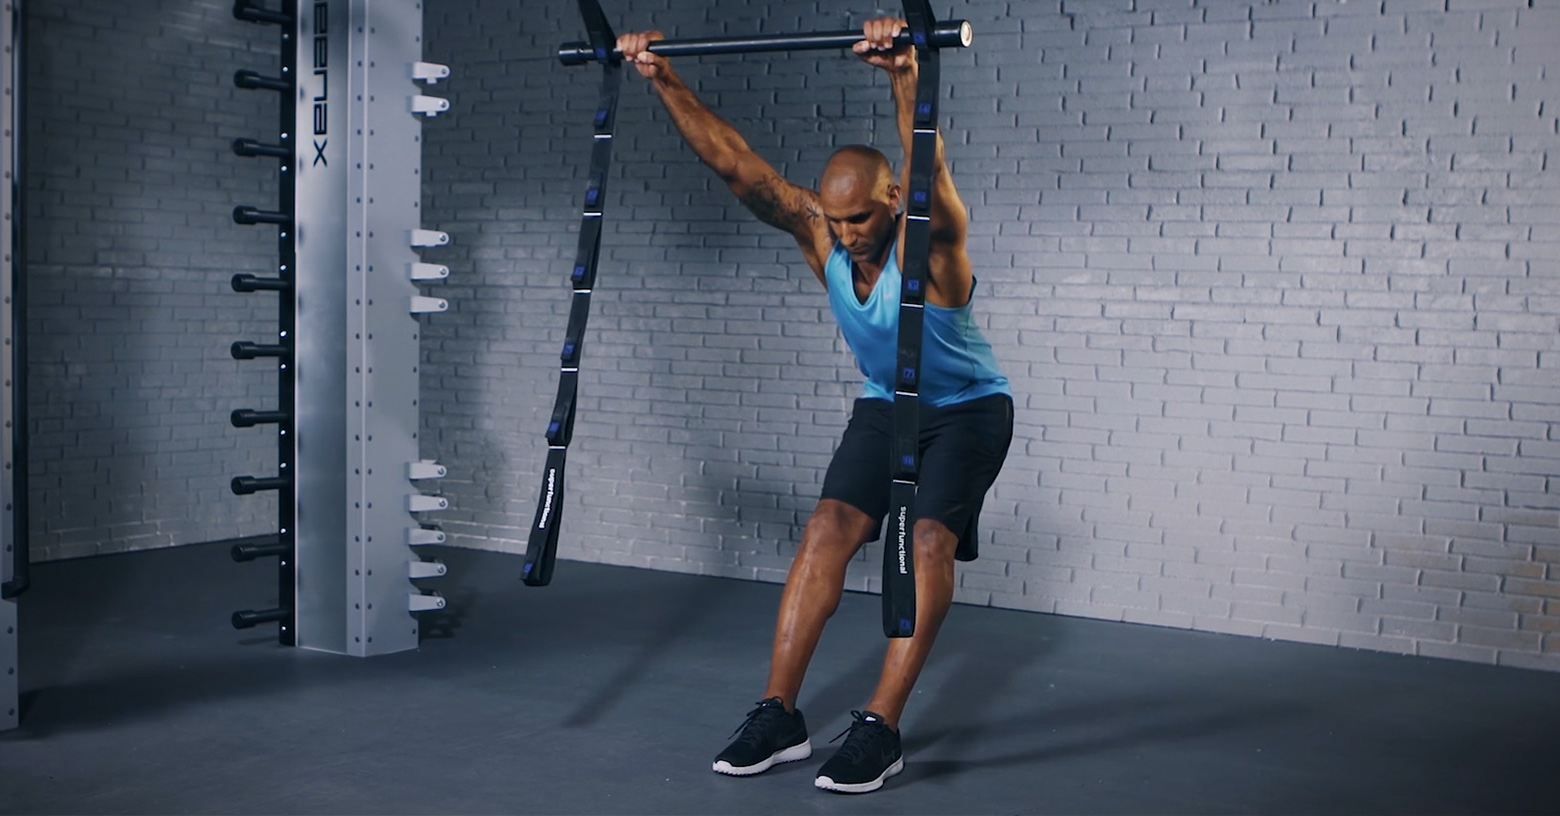 Superfunctional Y - Superfunktionelles Y - Y Super fonctionnel - EVO Fitness